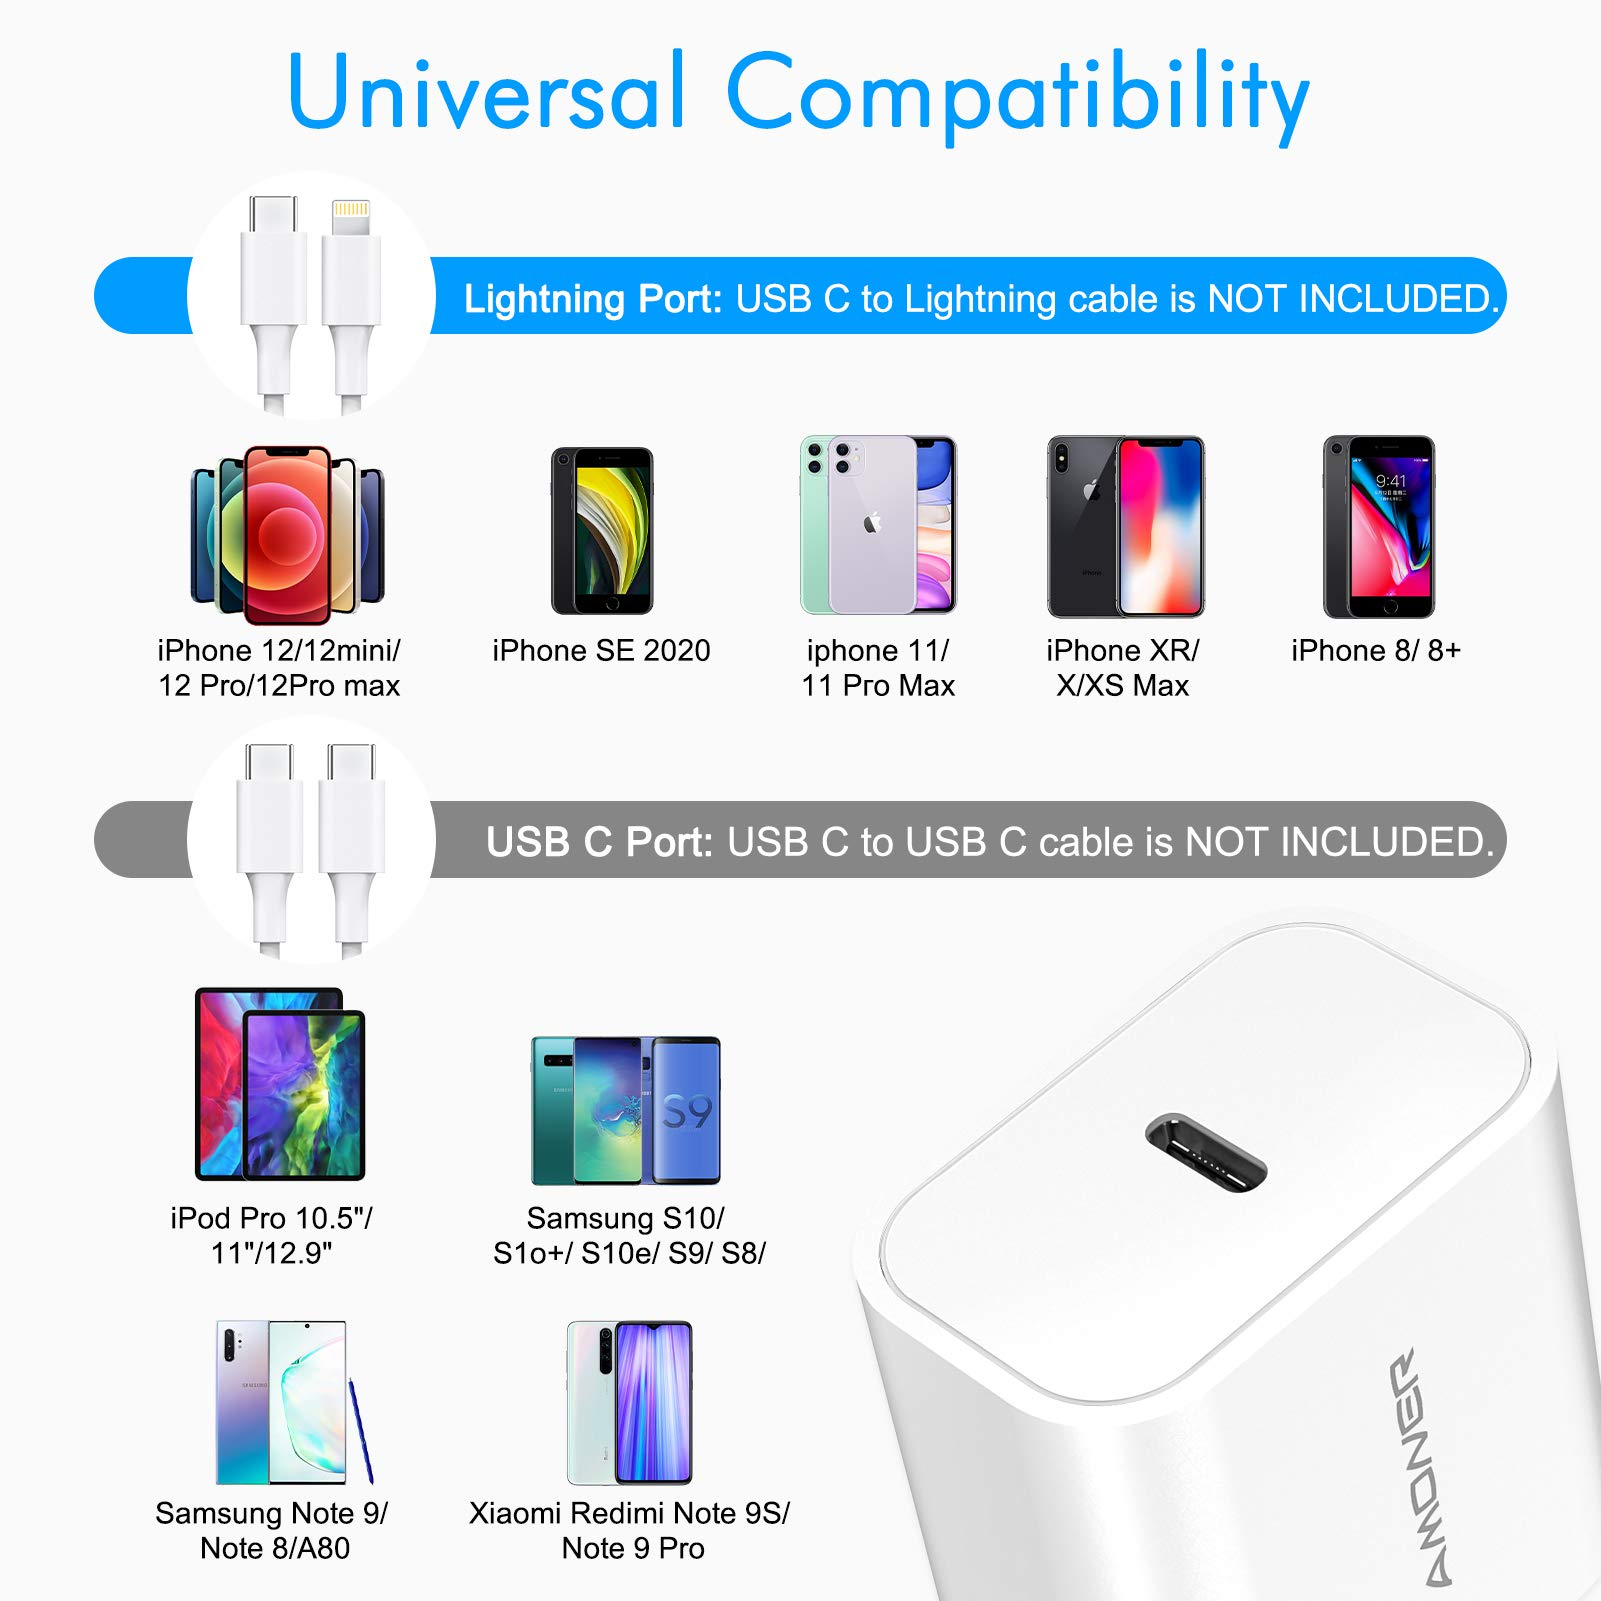 iPhone 12 Charger, Amoner 20W USB C Charger for iPhone 12/12 Mini /12 Pro Max, Power Delivery 3.0 Fast Charger, PD Type C Charger Compatible with iPhone 11, AirPods Pro, Pixel 3 (Cable not Included) White